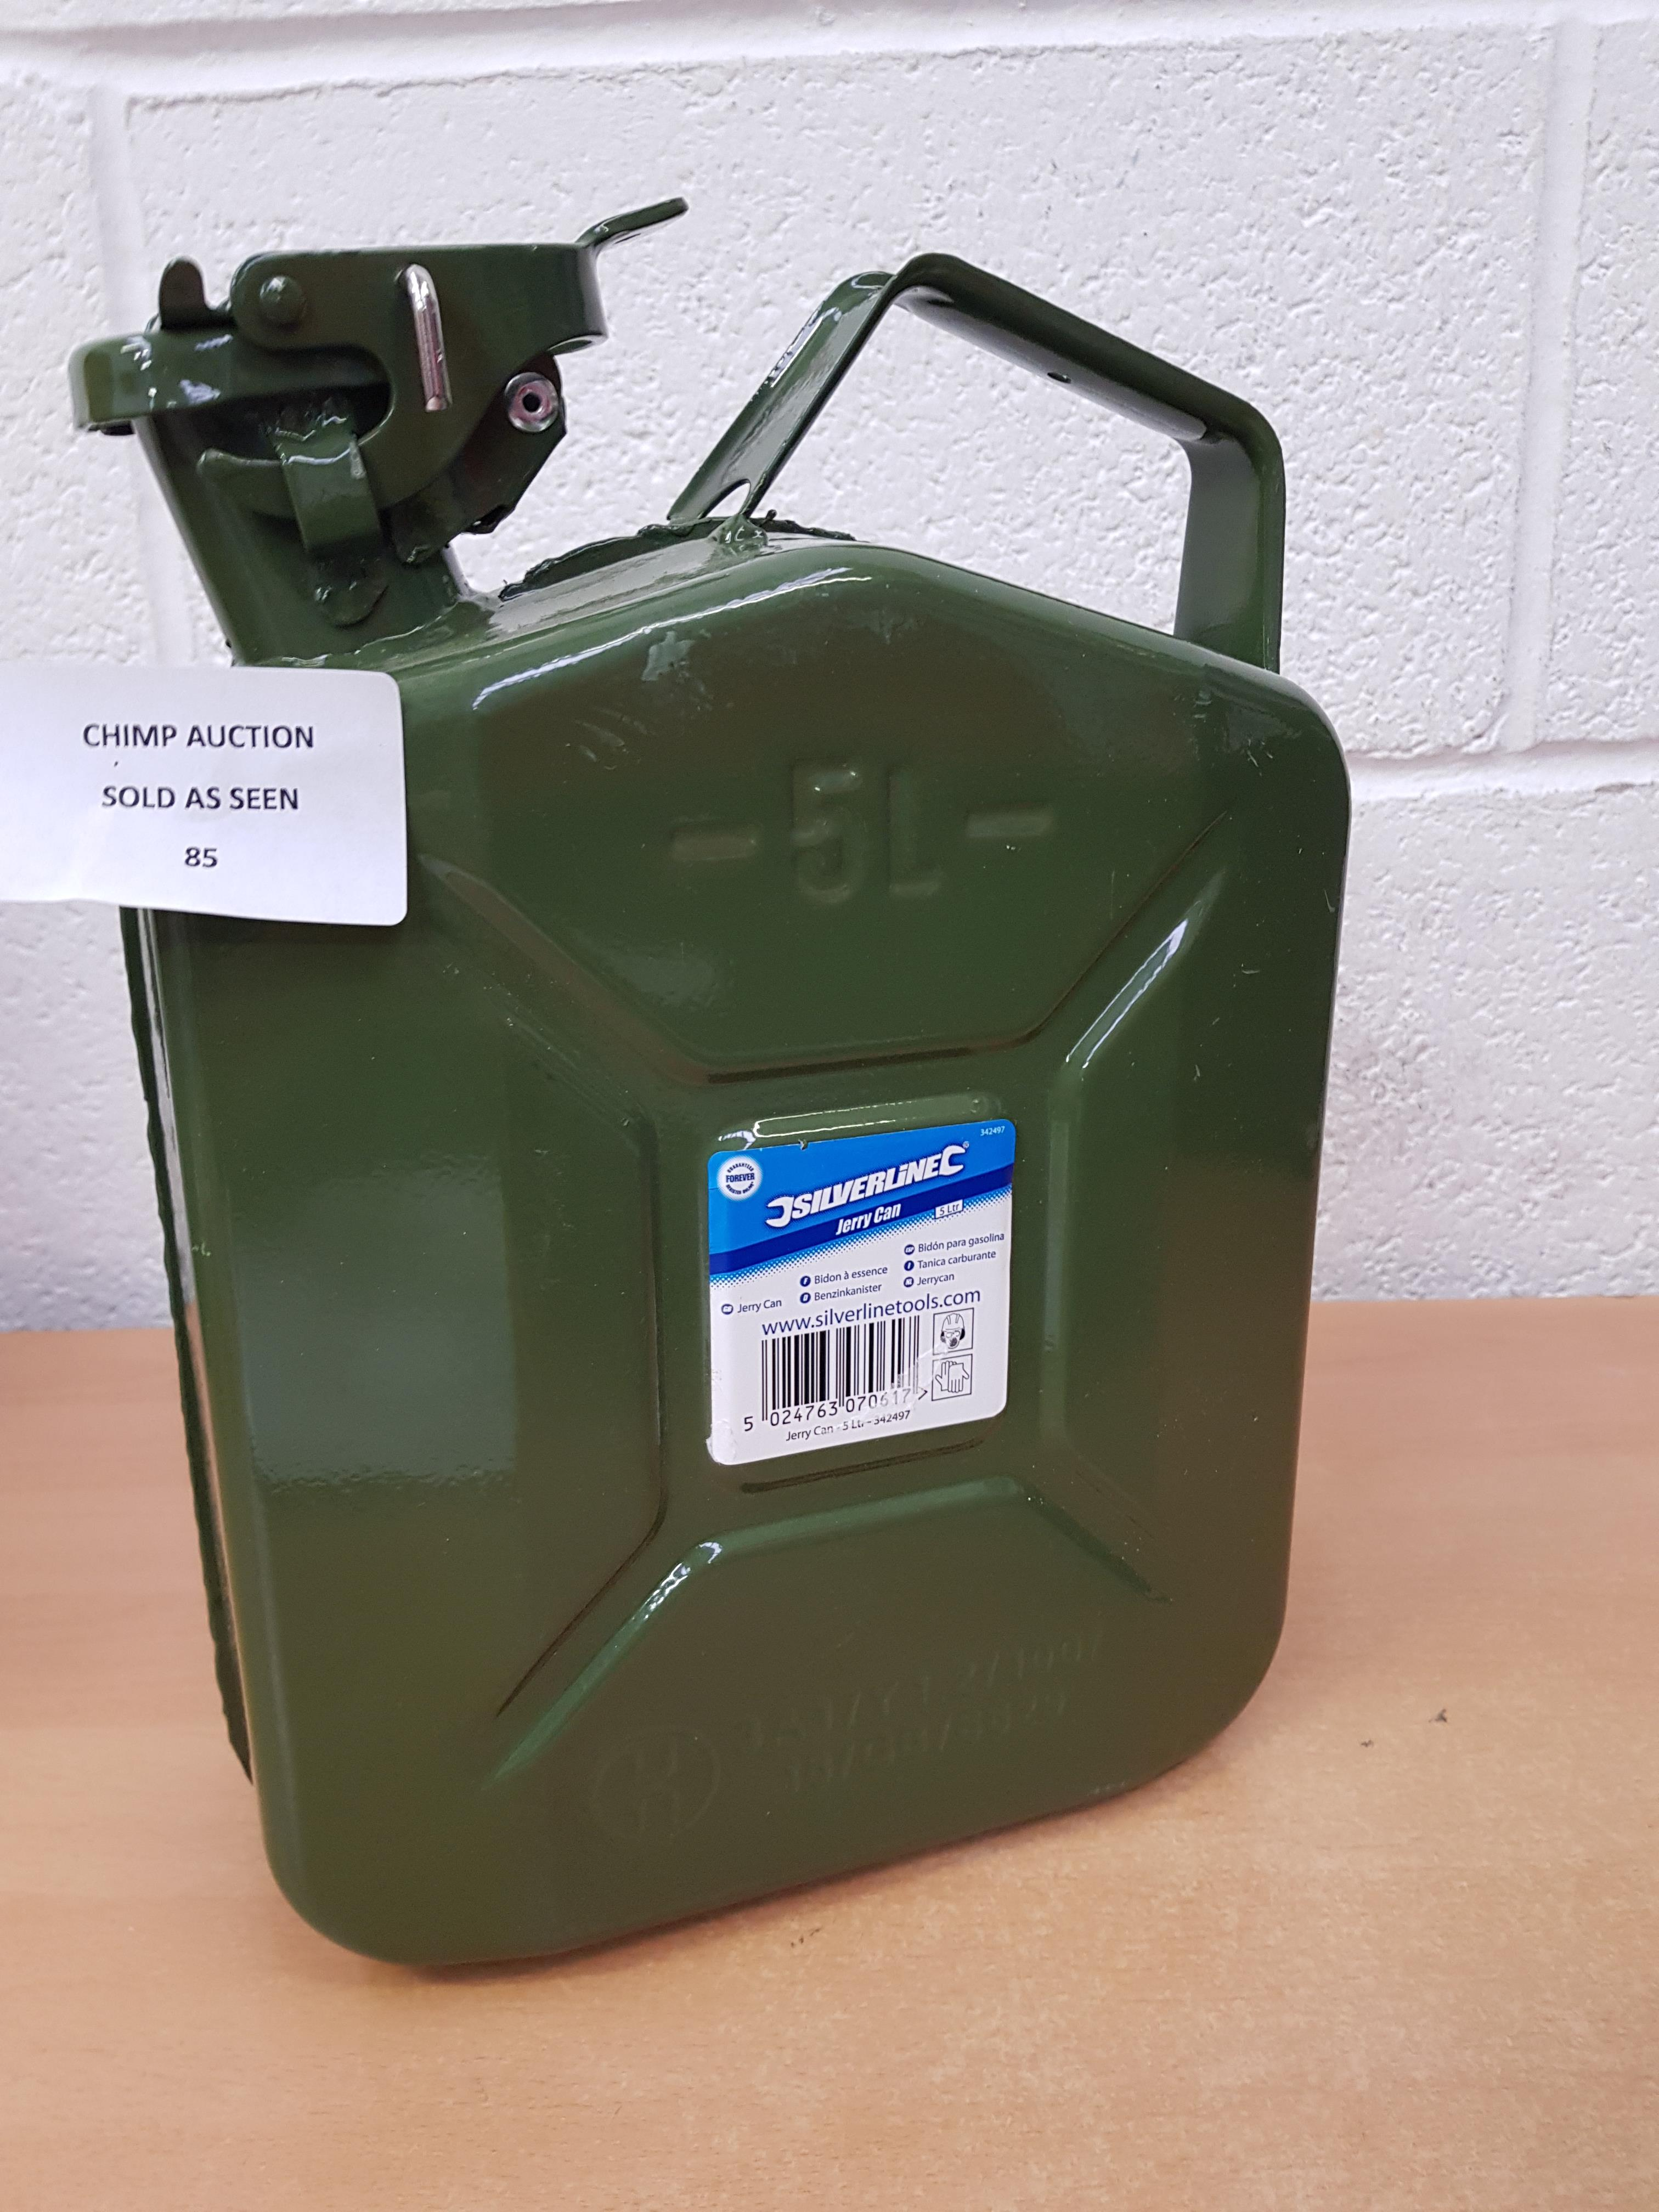 Lotto 85 - Silverline Jerry Can 5 L